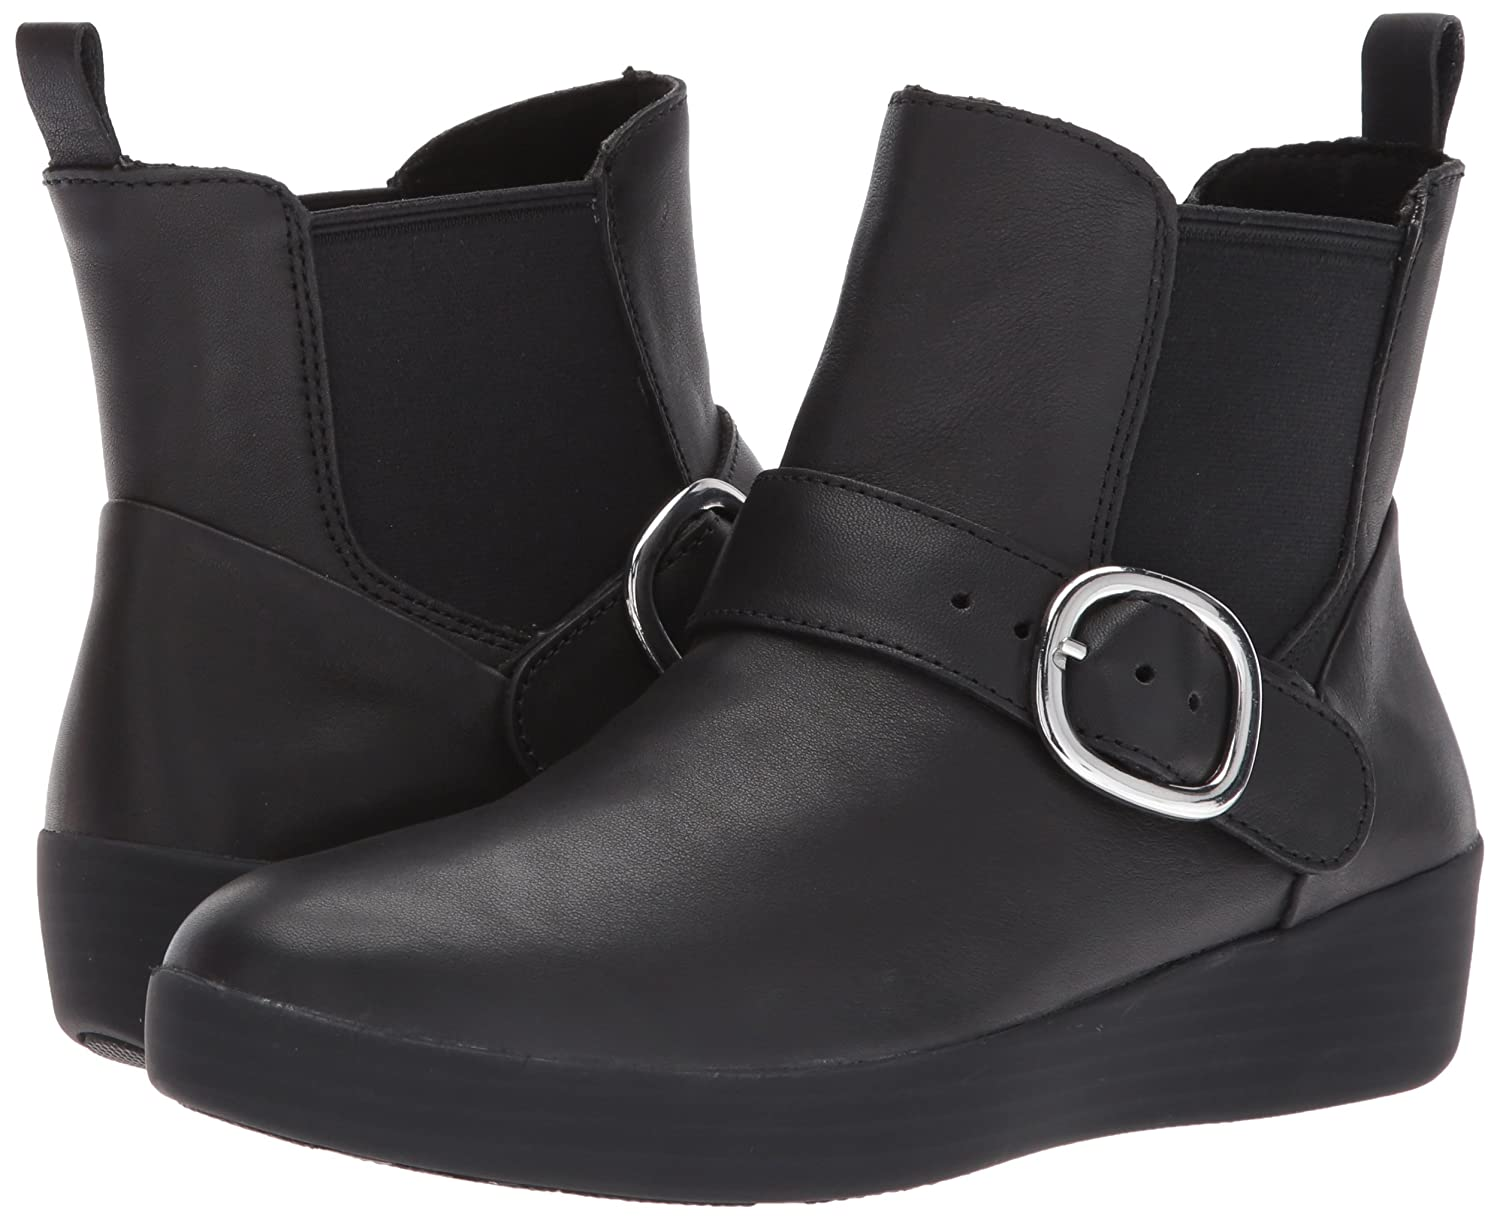 FitFlop Women's Superbuckle Leather Chelsea Fashion Boot B06XGH5CSM 8 M US|Black